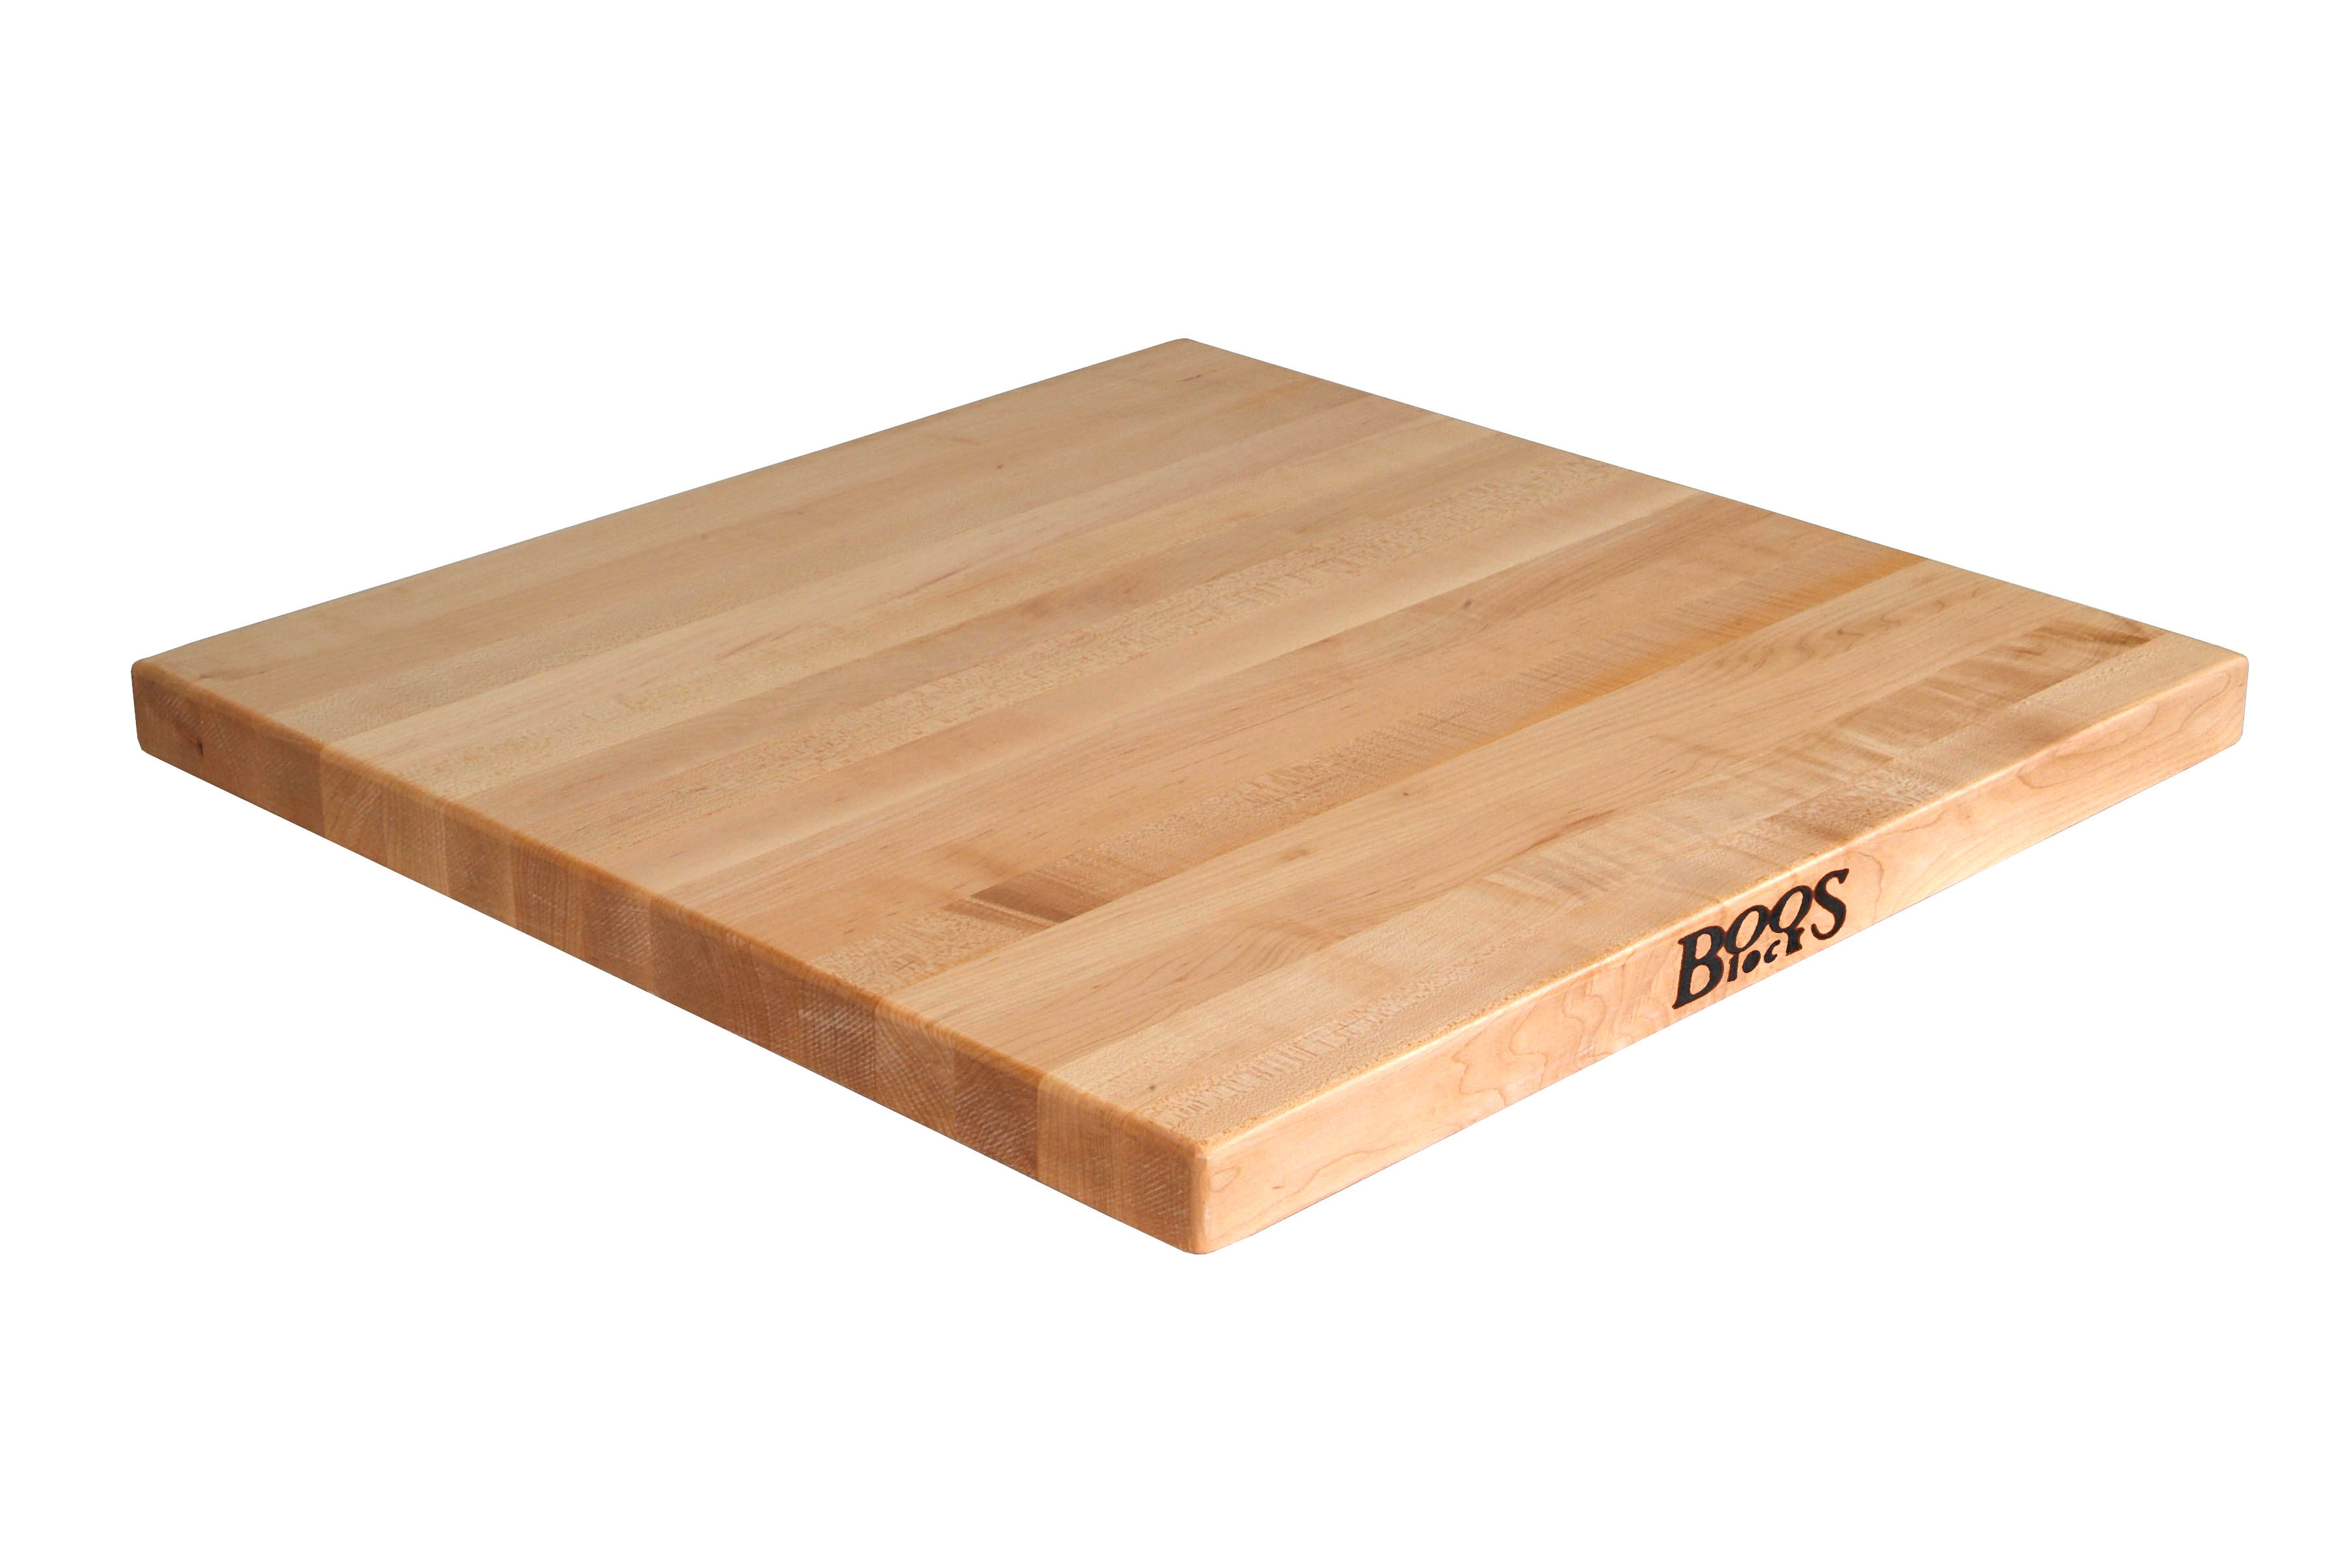 John Boos Maple Edge Grain Butcher Block Table Top